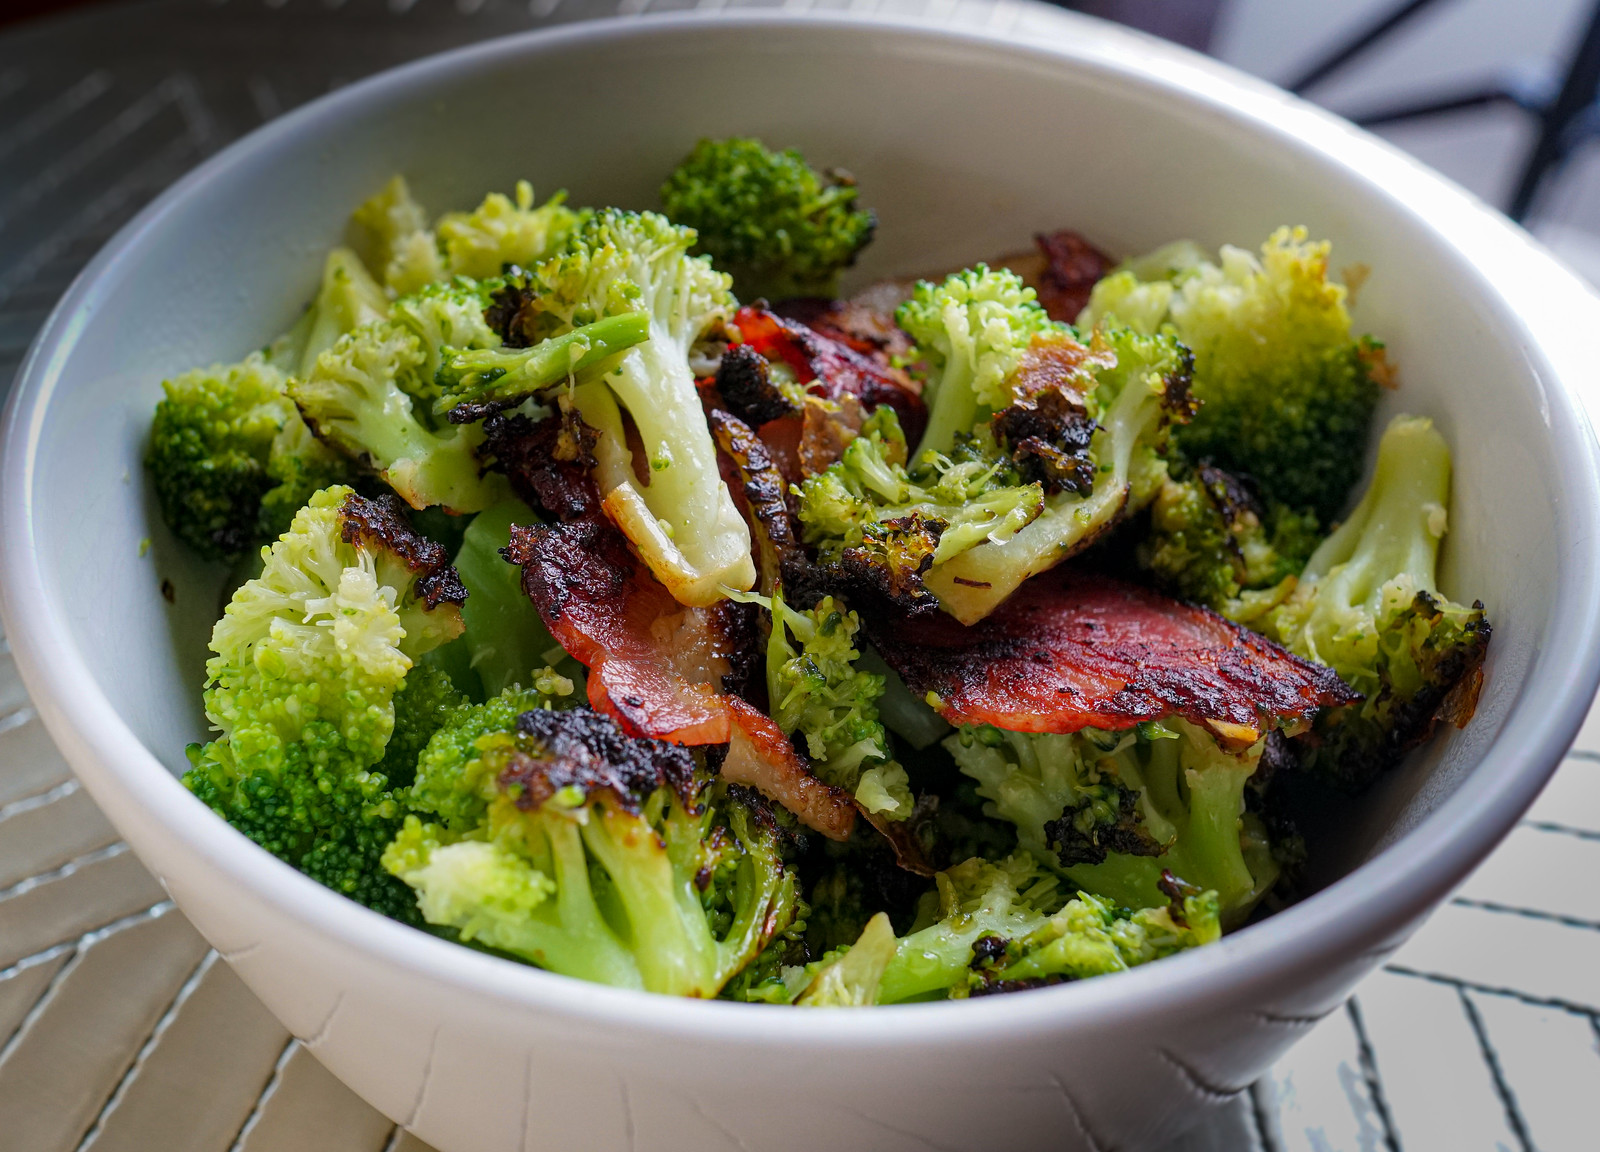 2019.07.07 Broccoli with Bacon, LCHF, Washington, DC USA 18305